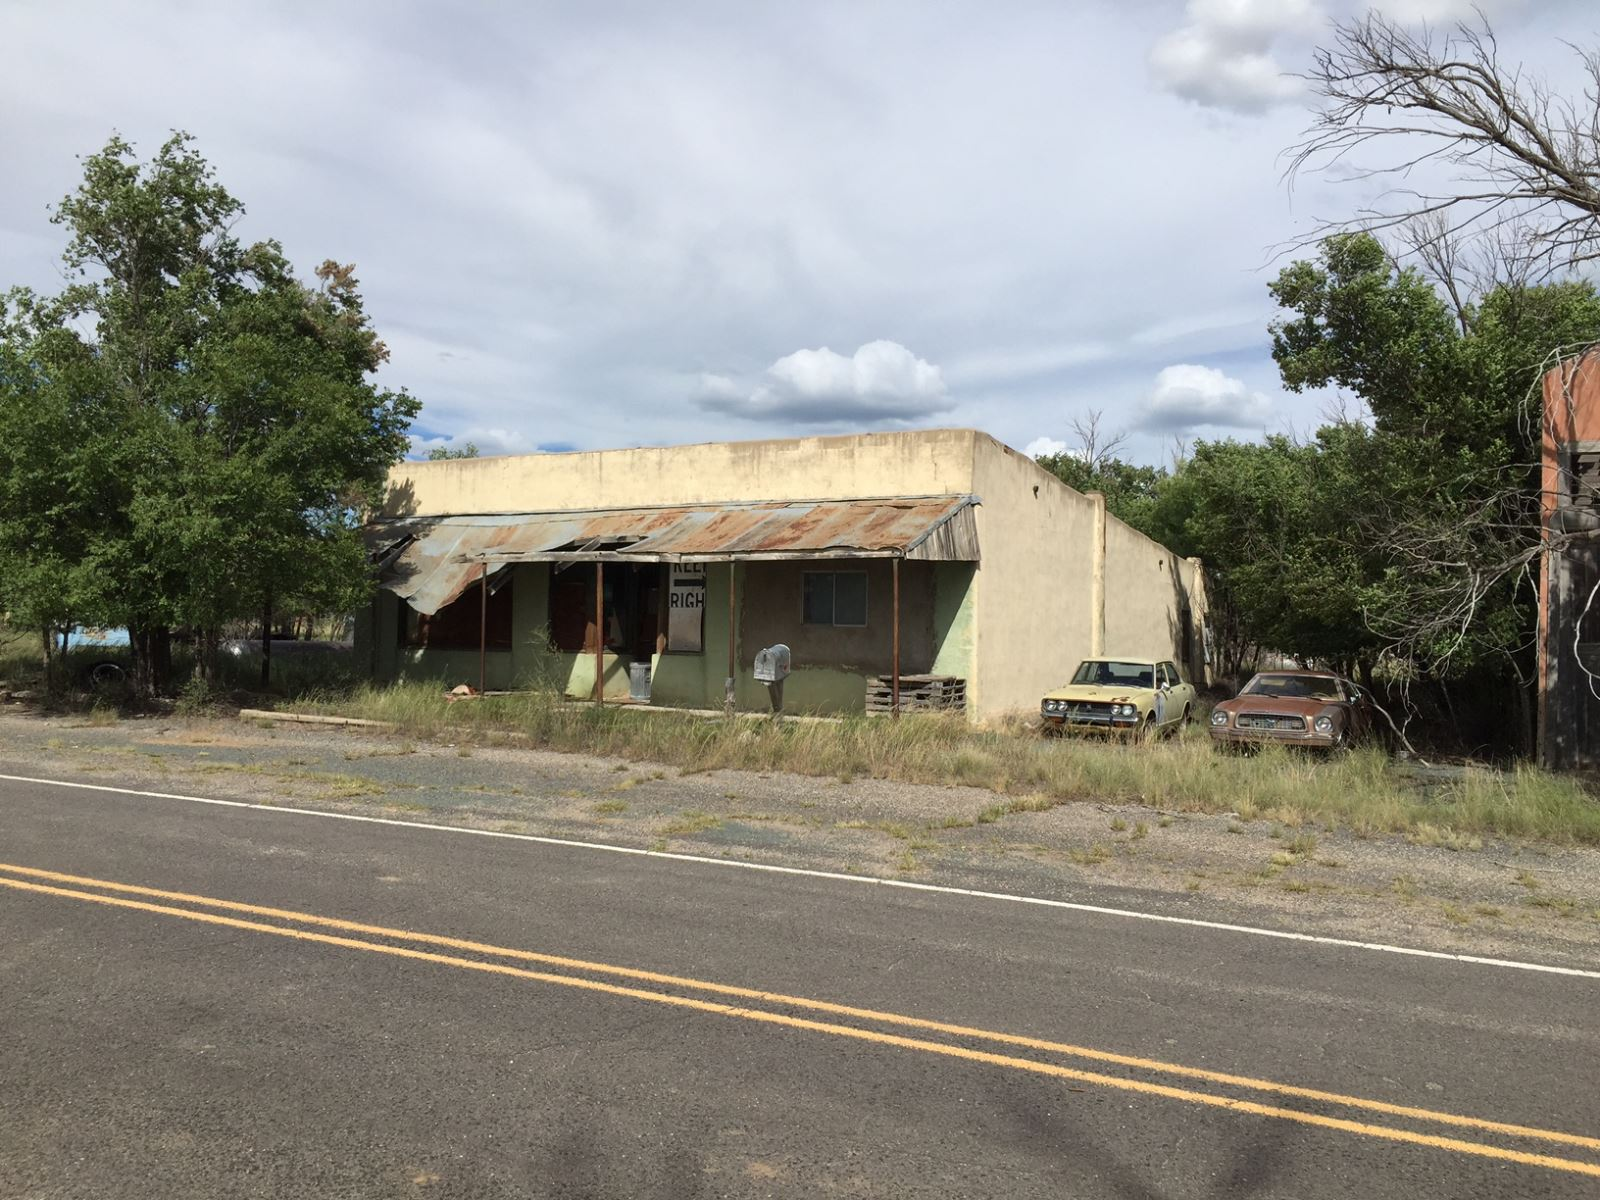 New mexico union county gladstone - Downtown Farley Now Looks Like This Photo Of Fielden Mercantile One Of Four Grocery Stores That Operated